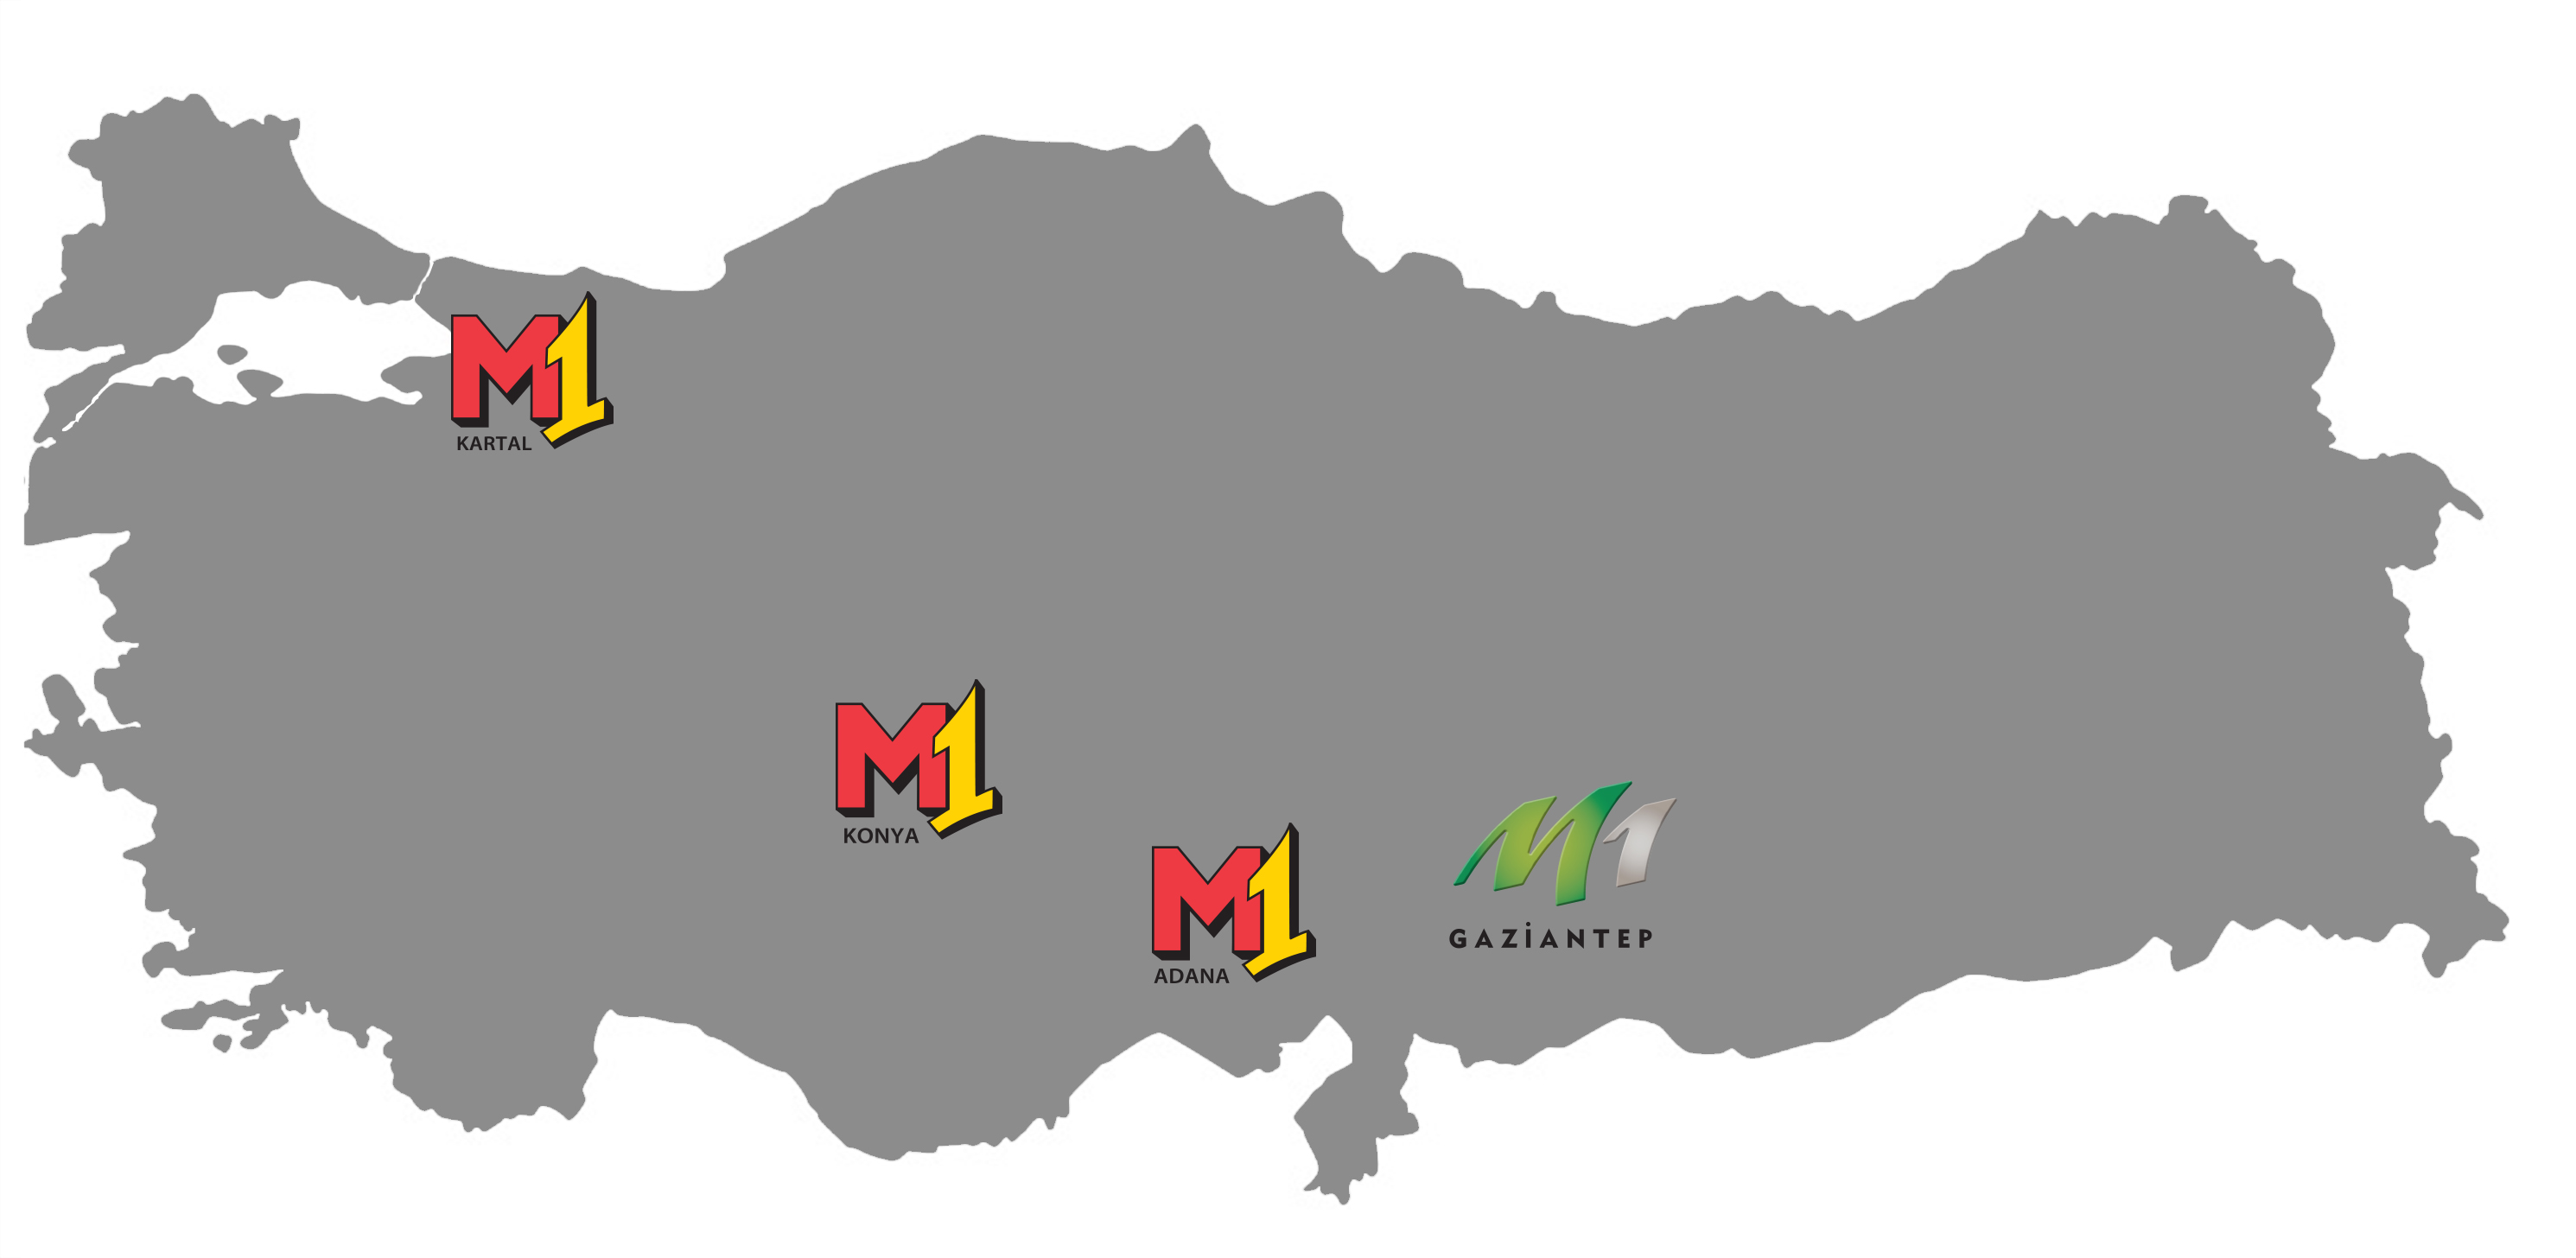 M1 locations map Turkey